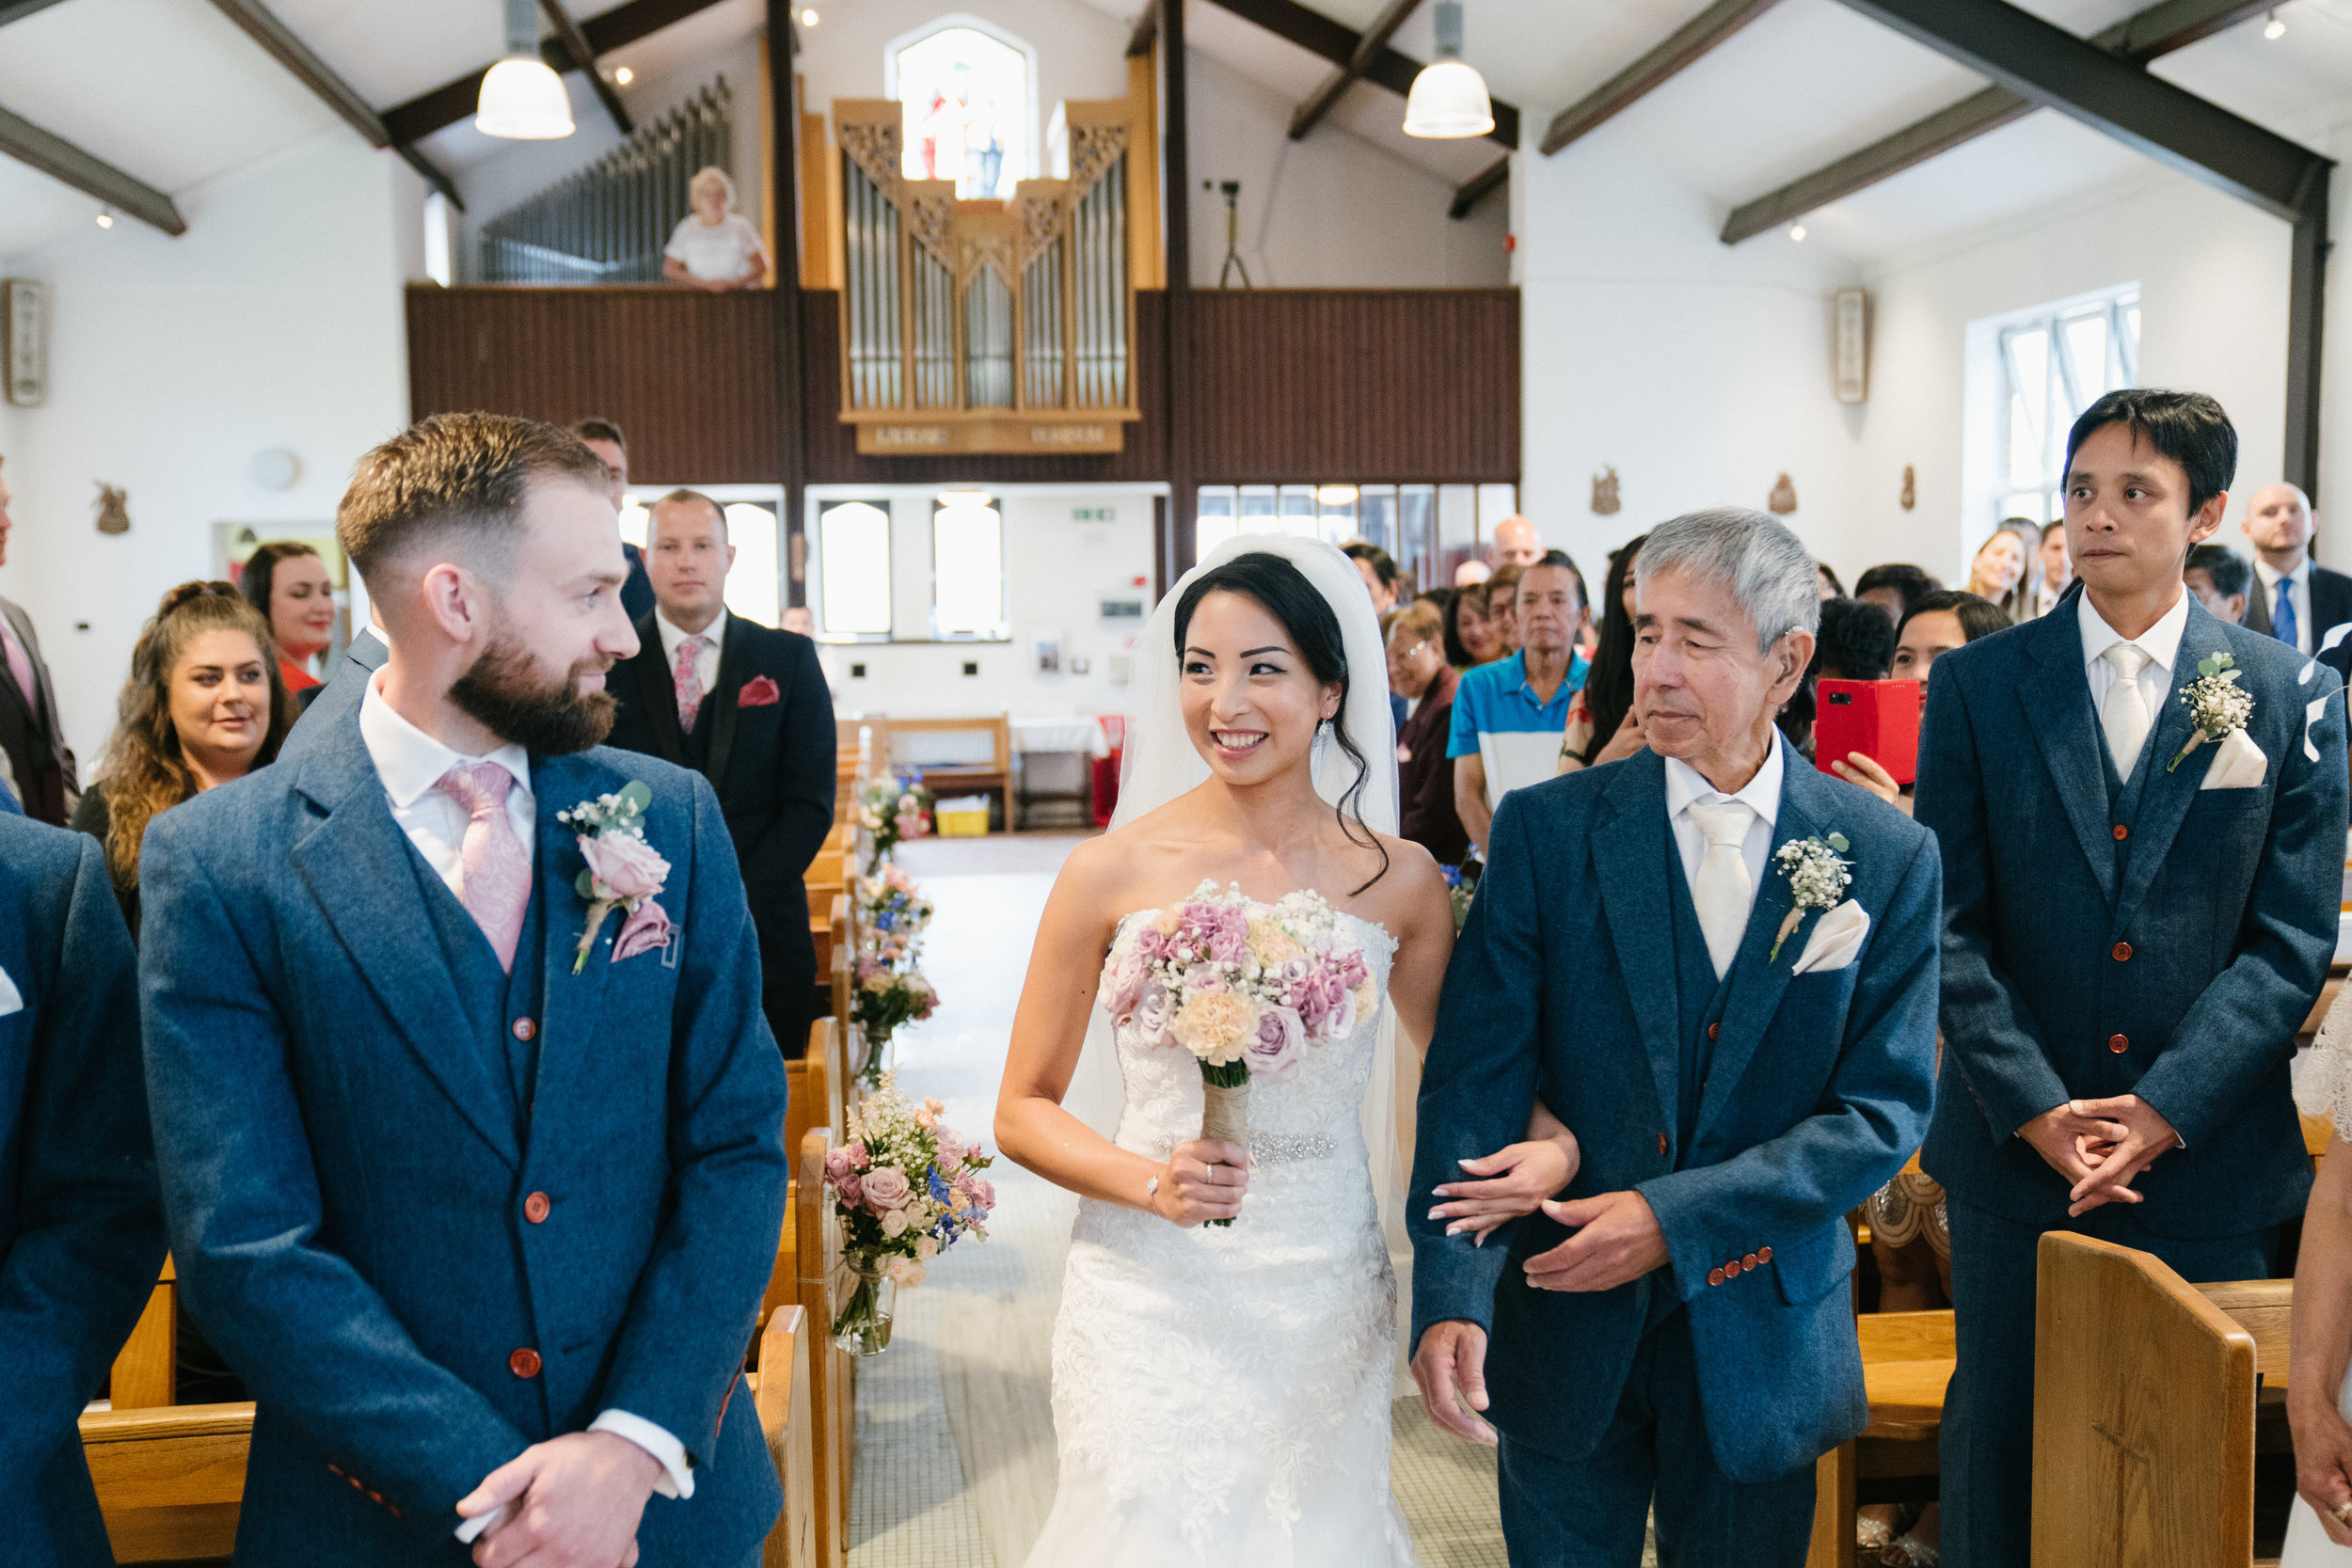 bedfordshire-london-wedding-photographer-videographer-25